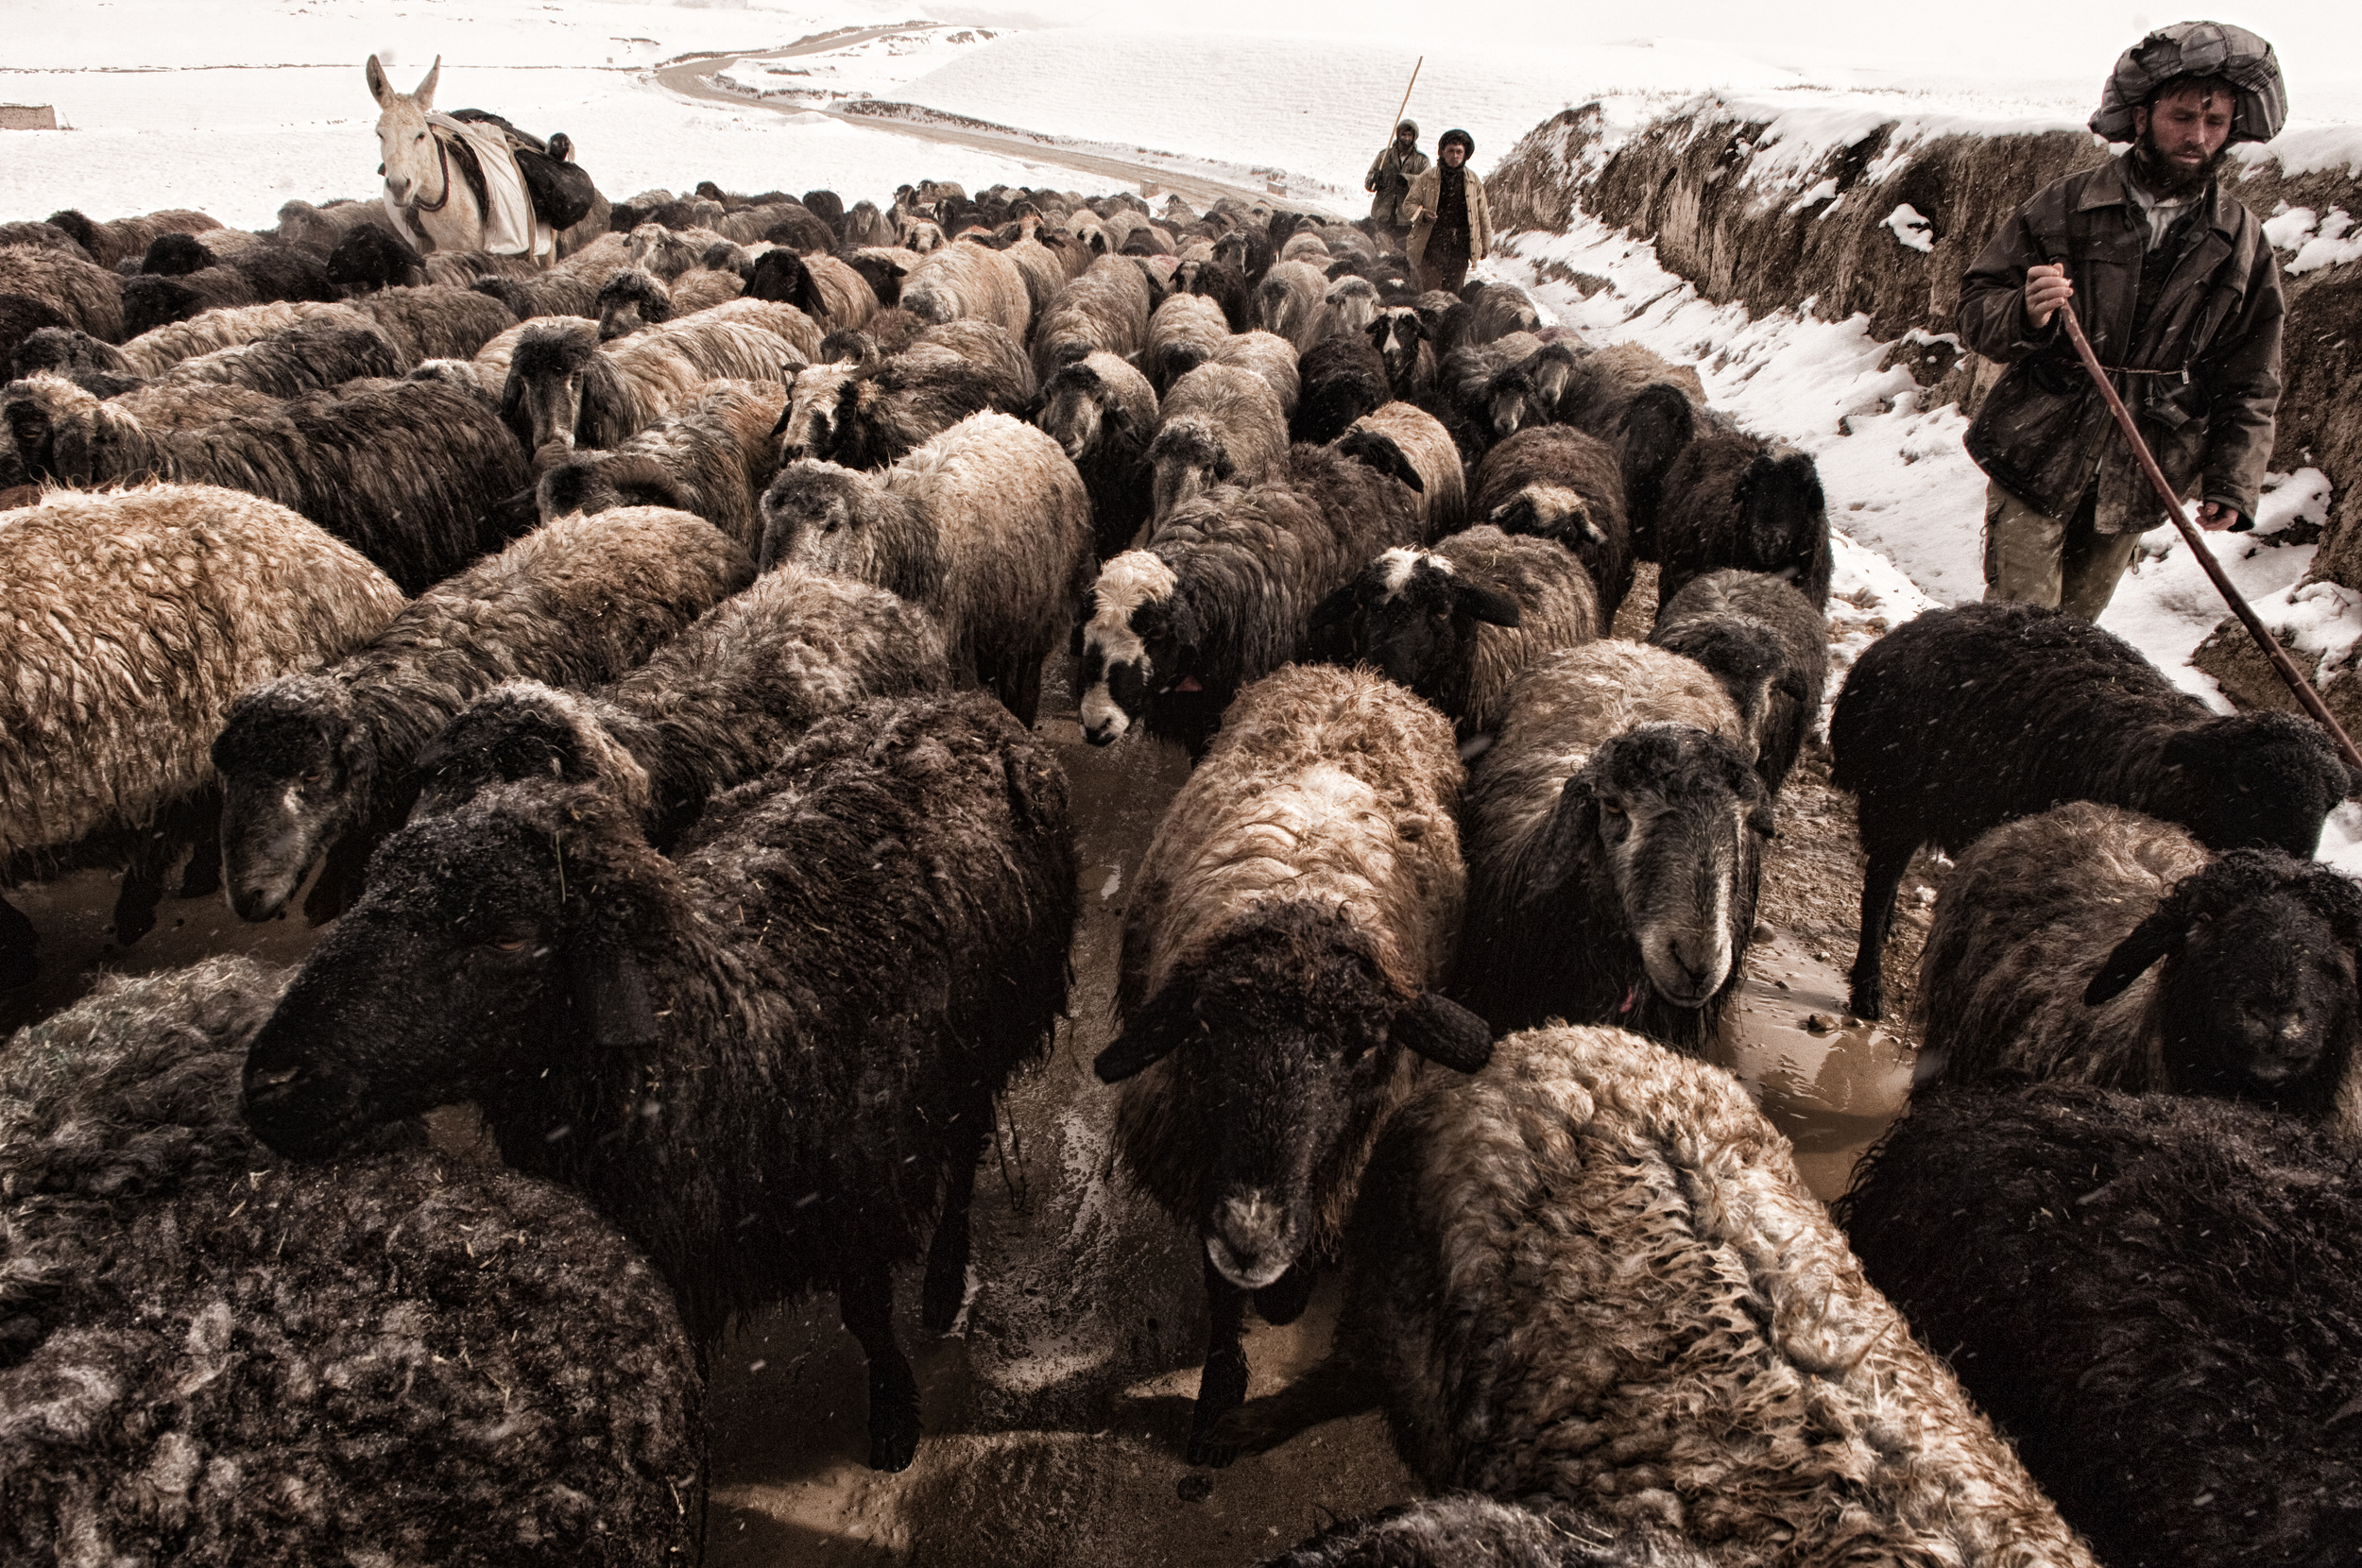 Nearly half the villages in western Afghanistan had been cut off from the major cities due to heavy snowfall, the cold snap hit the agricultural and livestock industry hard with more than 130,000 cattle perishing in the freezing temperatures Faryab Province, Afghanistan, February 21, 2008. (Photo/Mark Pearson)